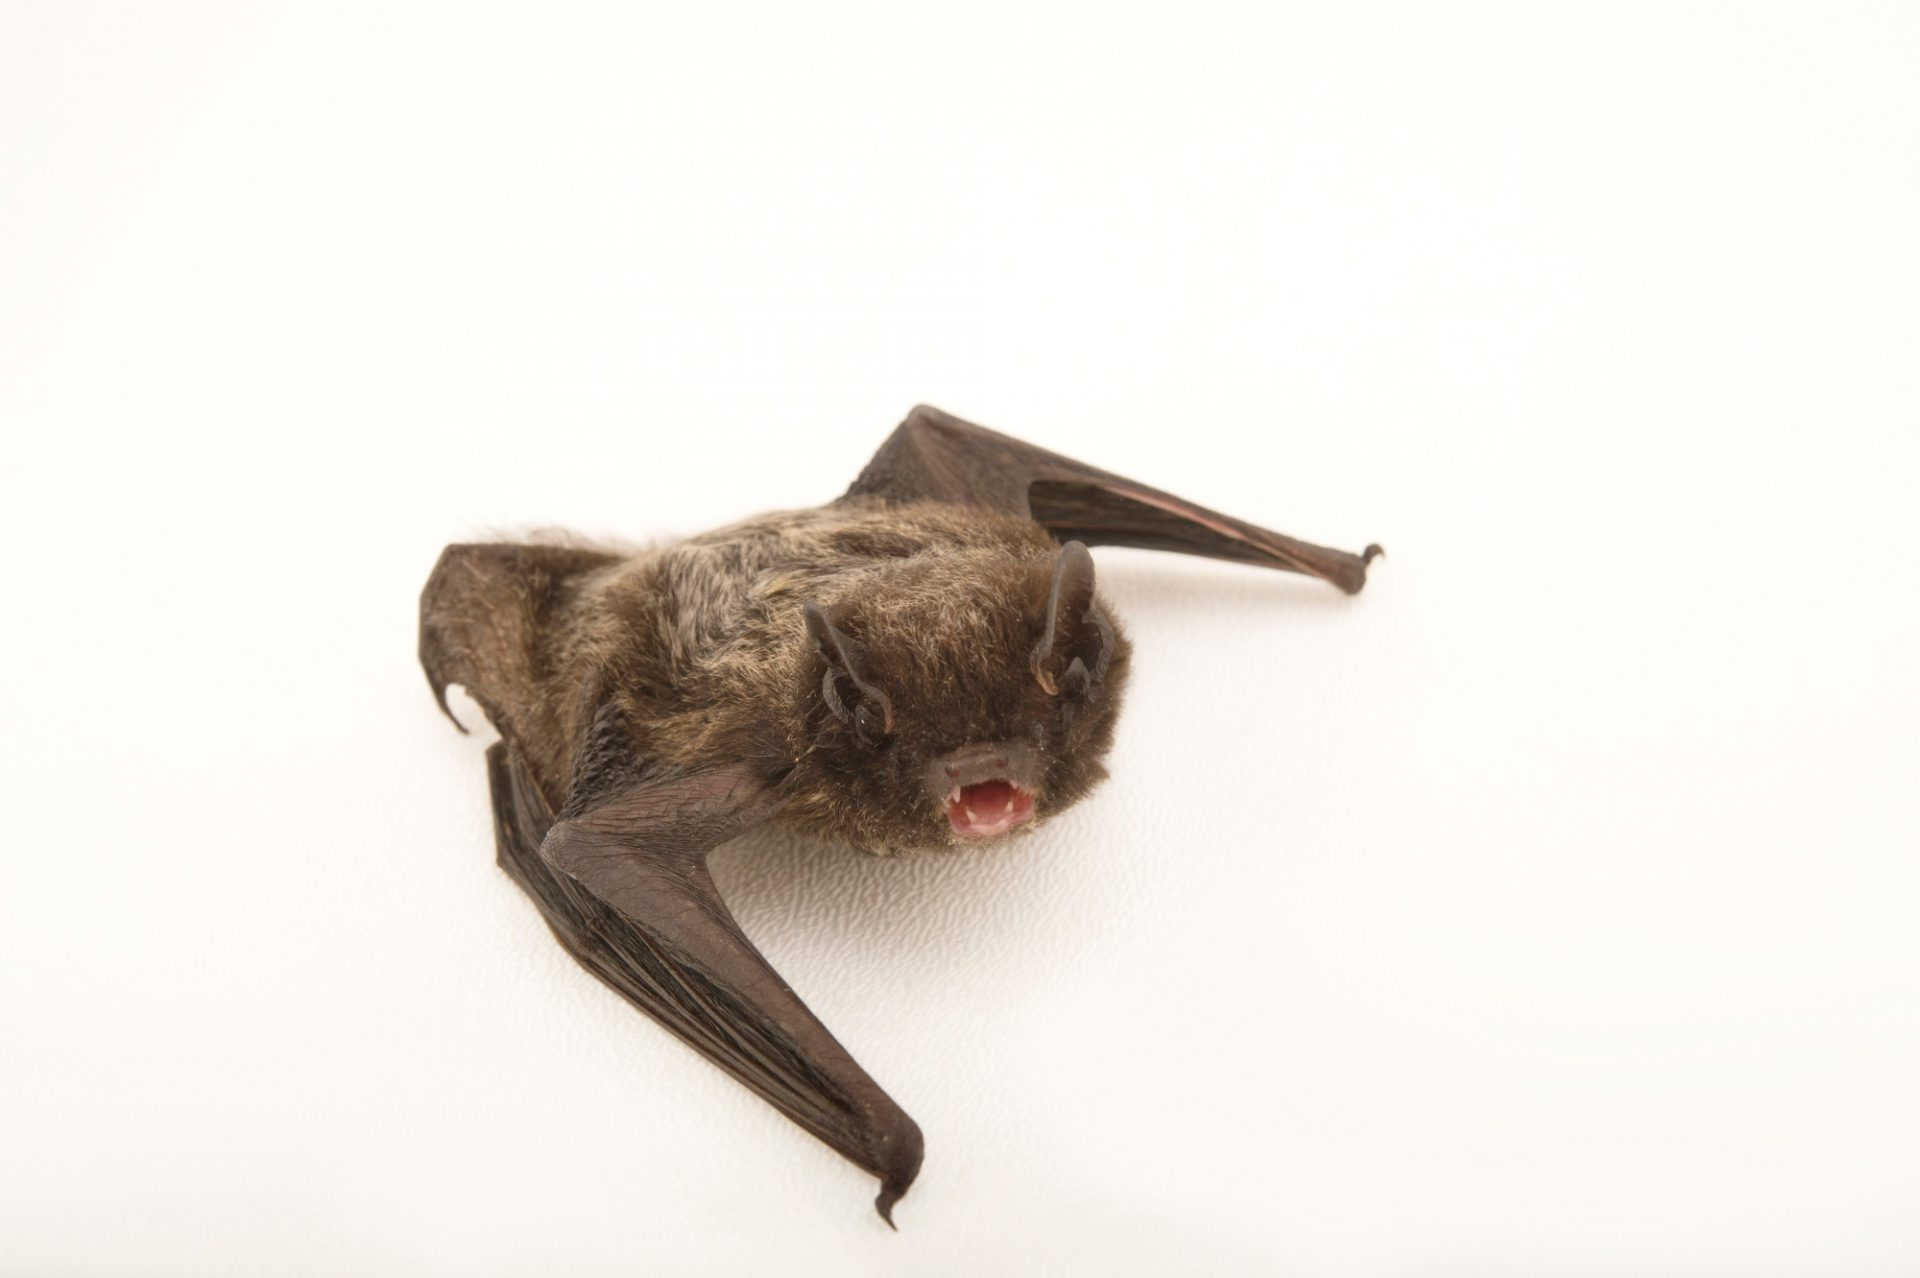 Picture of a silver-haired bat (Lasionycteris noctivagans) at the Wildlife Rehabilitation Center of Northern Utah.